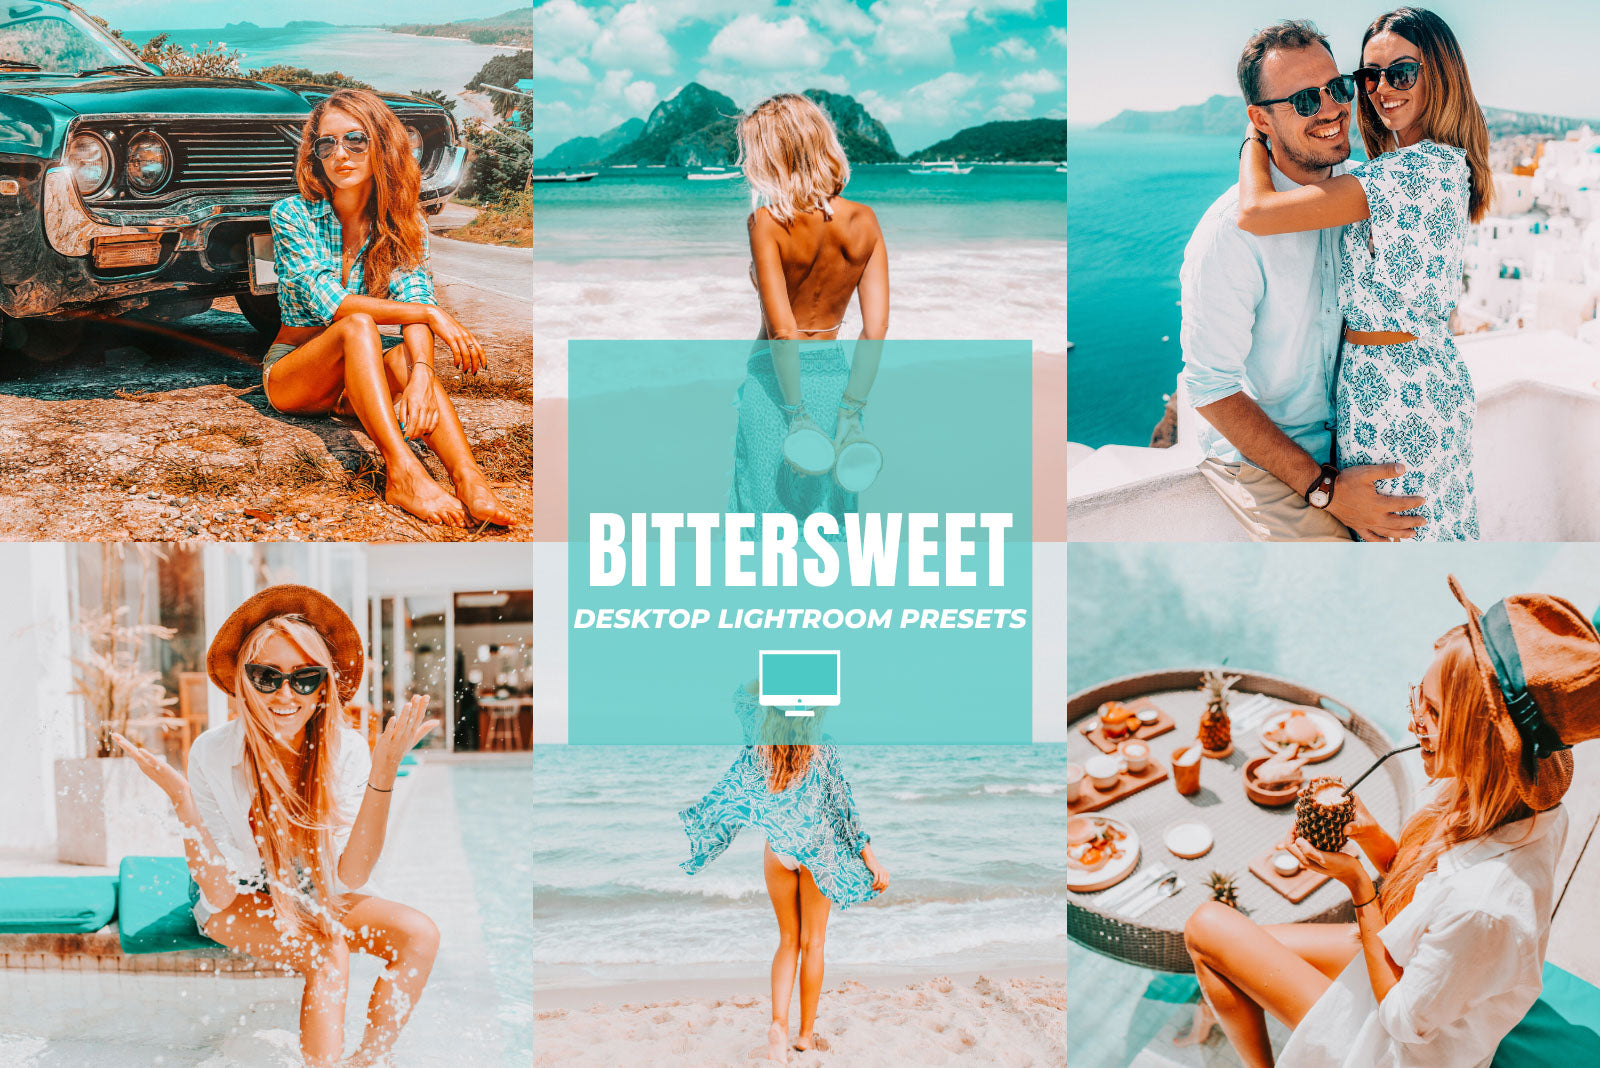 BITTERSWEET DESKTOP LIGHTROOM PRESETS by The Viral Presets